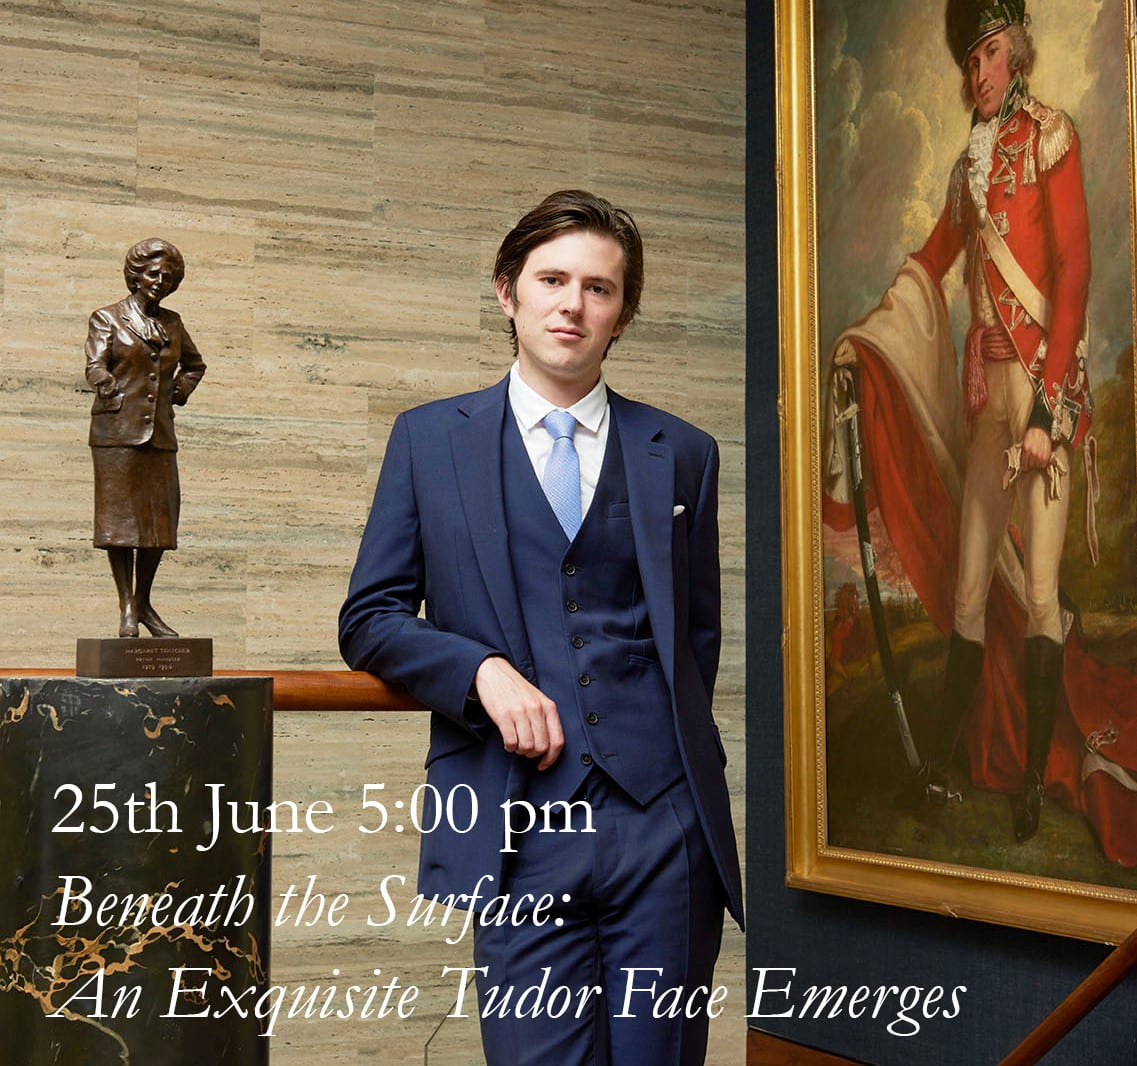 Occasionally, pictures survive in such good condition that they appear almost disarmingly fresh and modern, so attuned is our eye to looking at works damaged by dirt, abrasion and neglect. In this talk, Lawrence Hendra, Head of Research at Philip Mould and Company, will discuss an exceptional 16th century portrait, attributable to the Master of the Countess of Warwick, which represents one of the finest small panel portraits of the period.